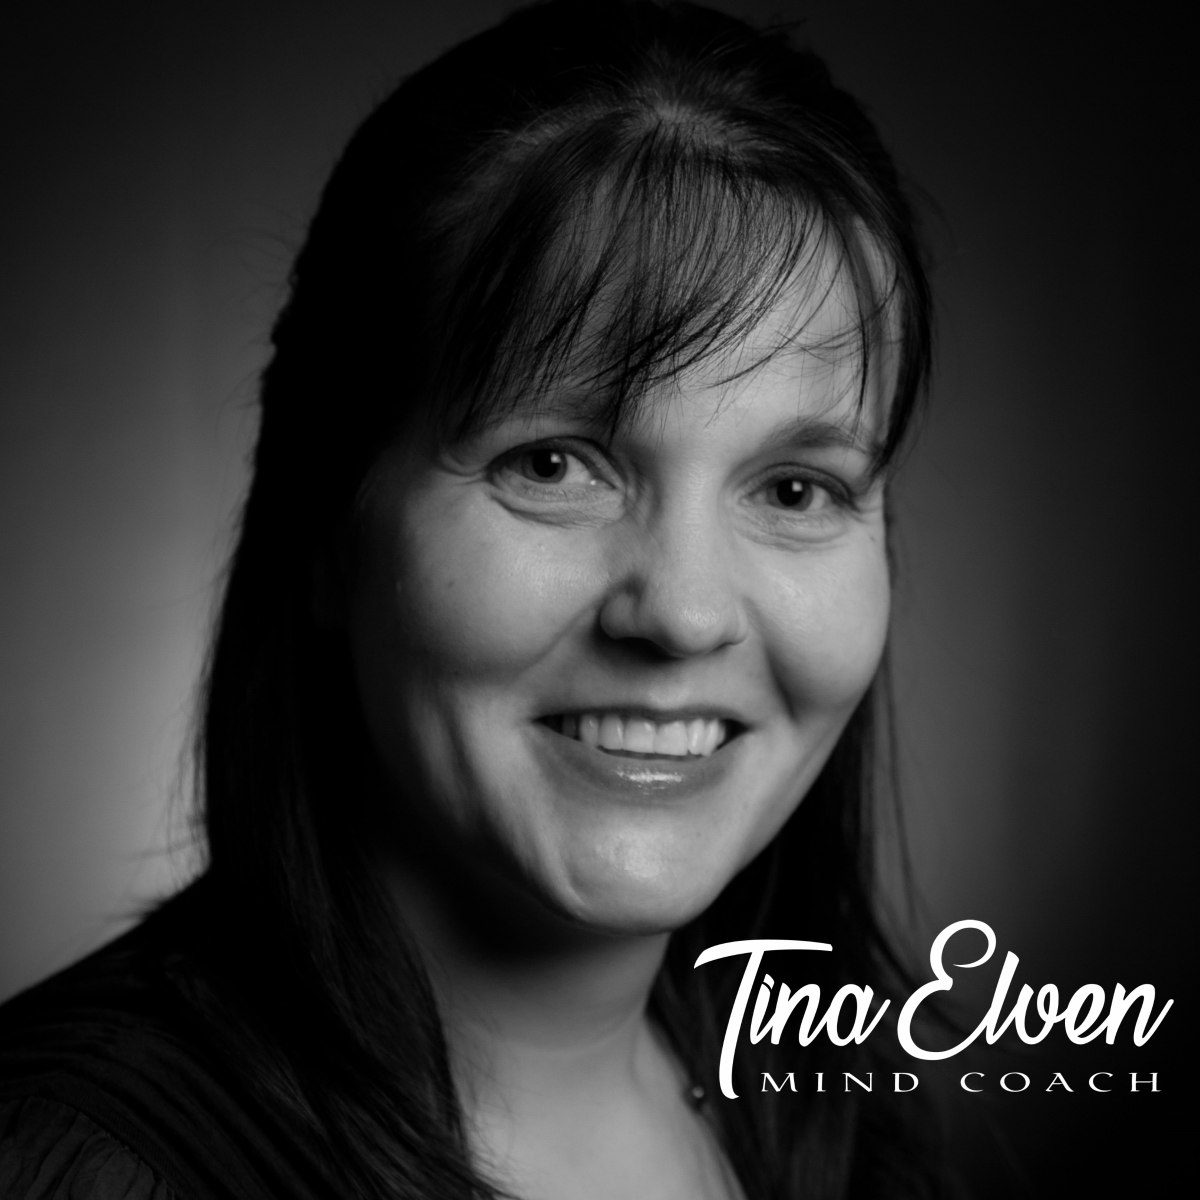 Tina Elven | Mind Coach | Empowering Parents to Boost Young Minds | Founder of Support 4 Kids Ltd